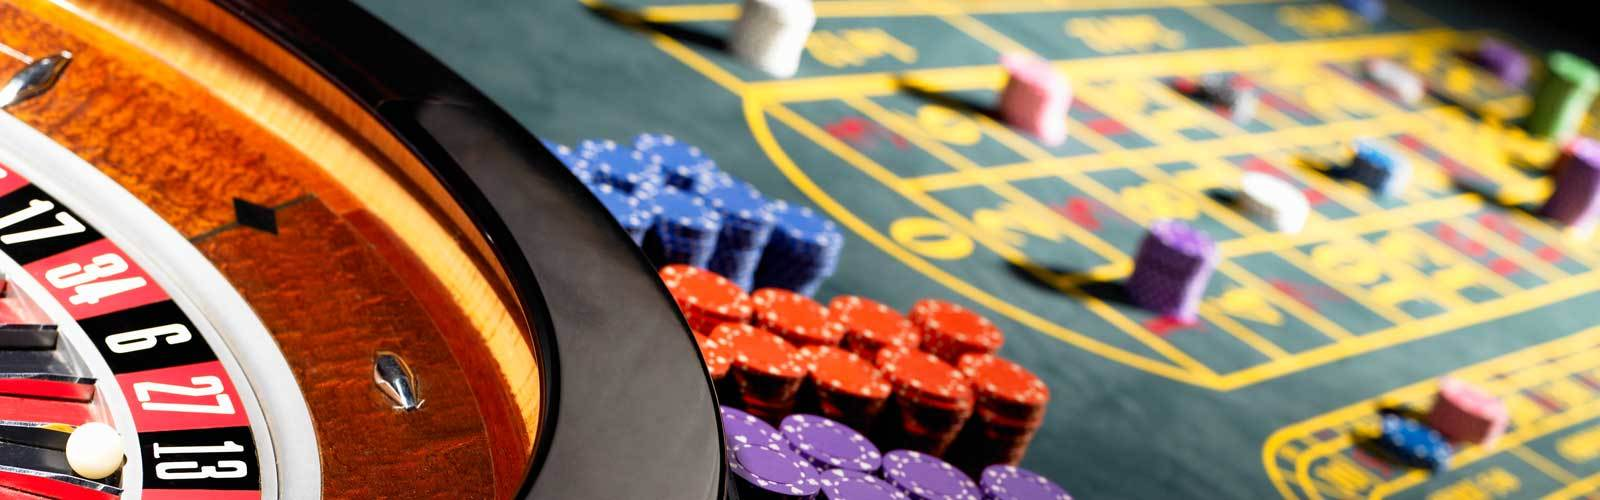 Gambling laws for casino in belize riverwind casino hours